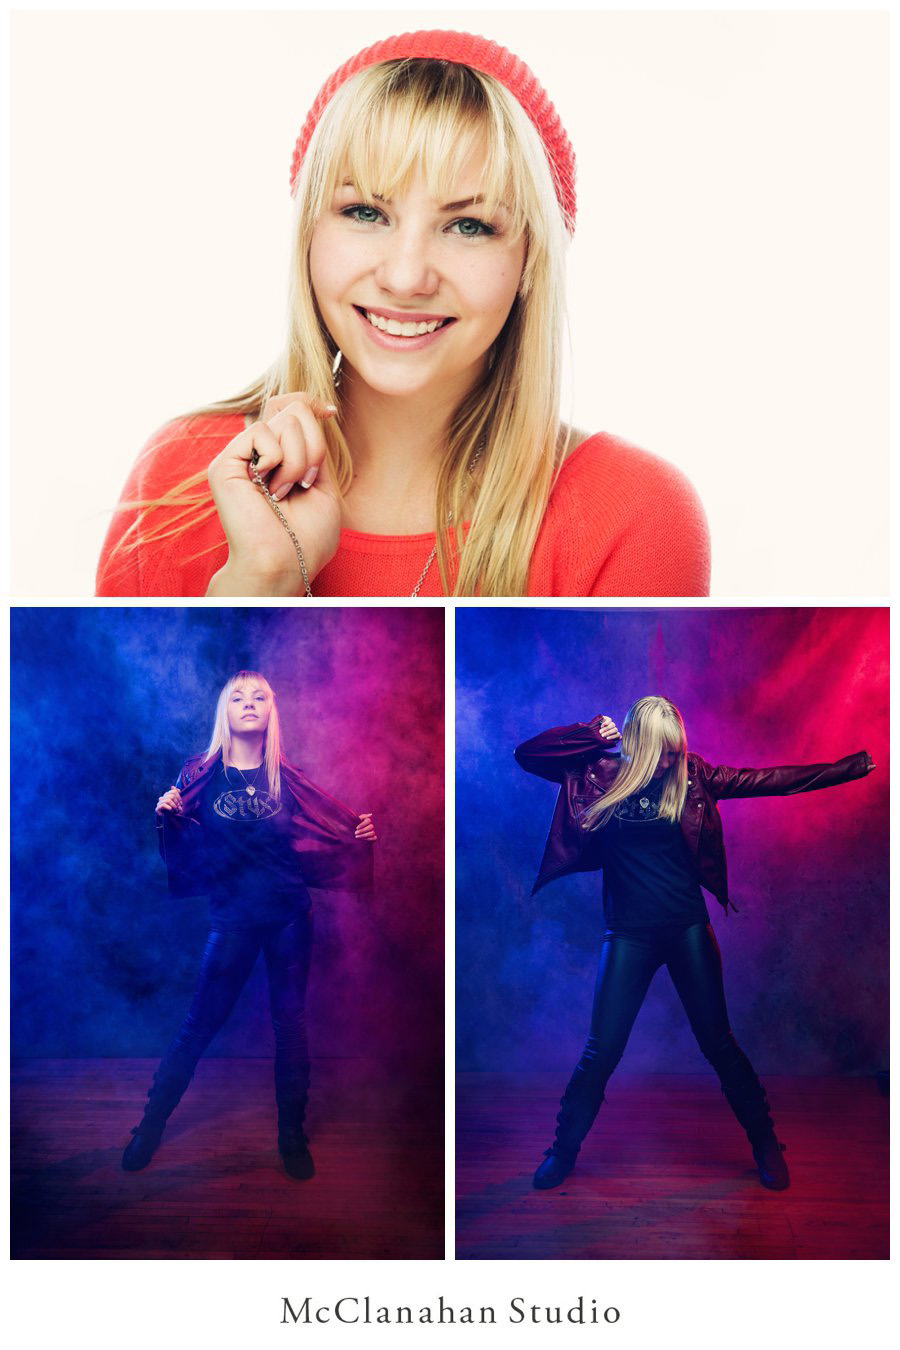 Backlit beanie photo of Brenna Bengston's killer smile. Also rock and roll senior photos showcasing Styx fandom with leather pants, stage lights and a fog machine! Taken at McClanahan Studio in Ames.